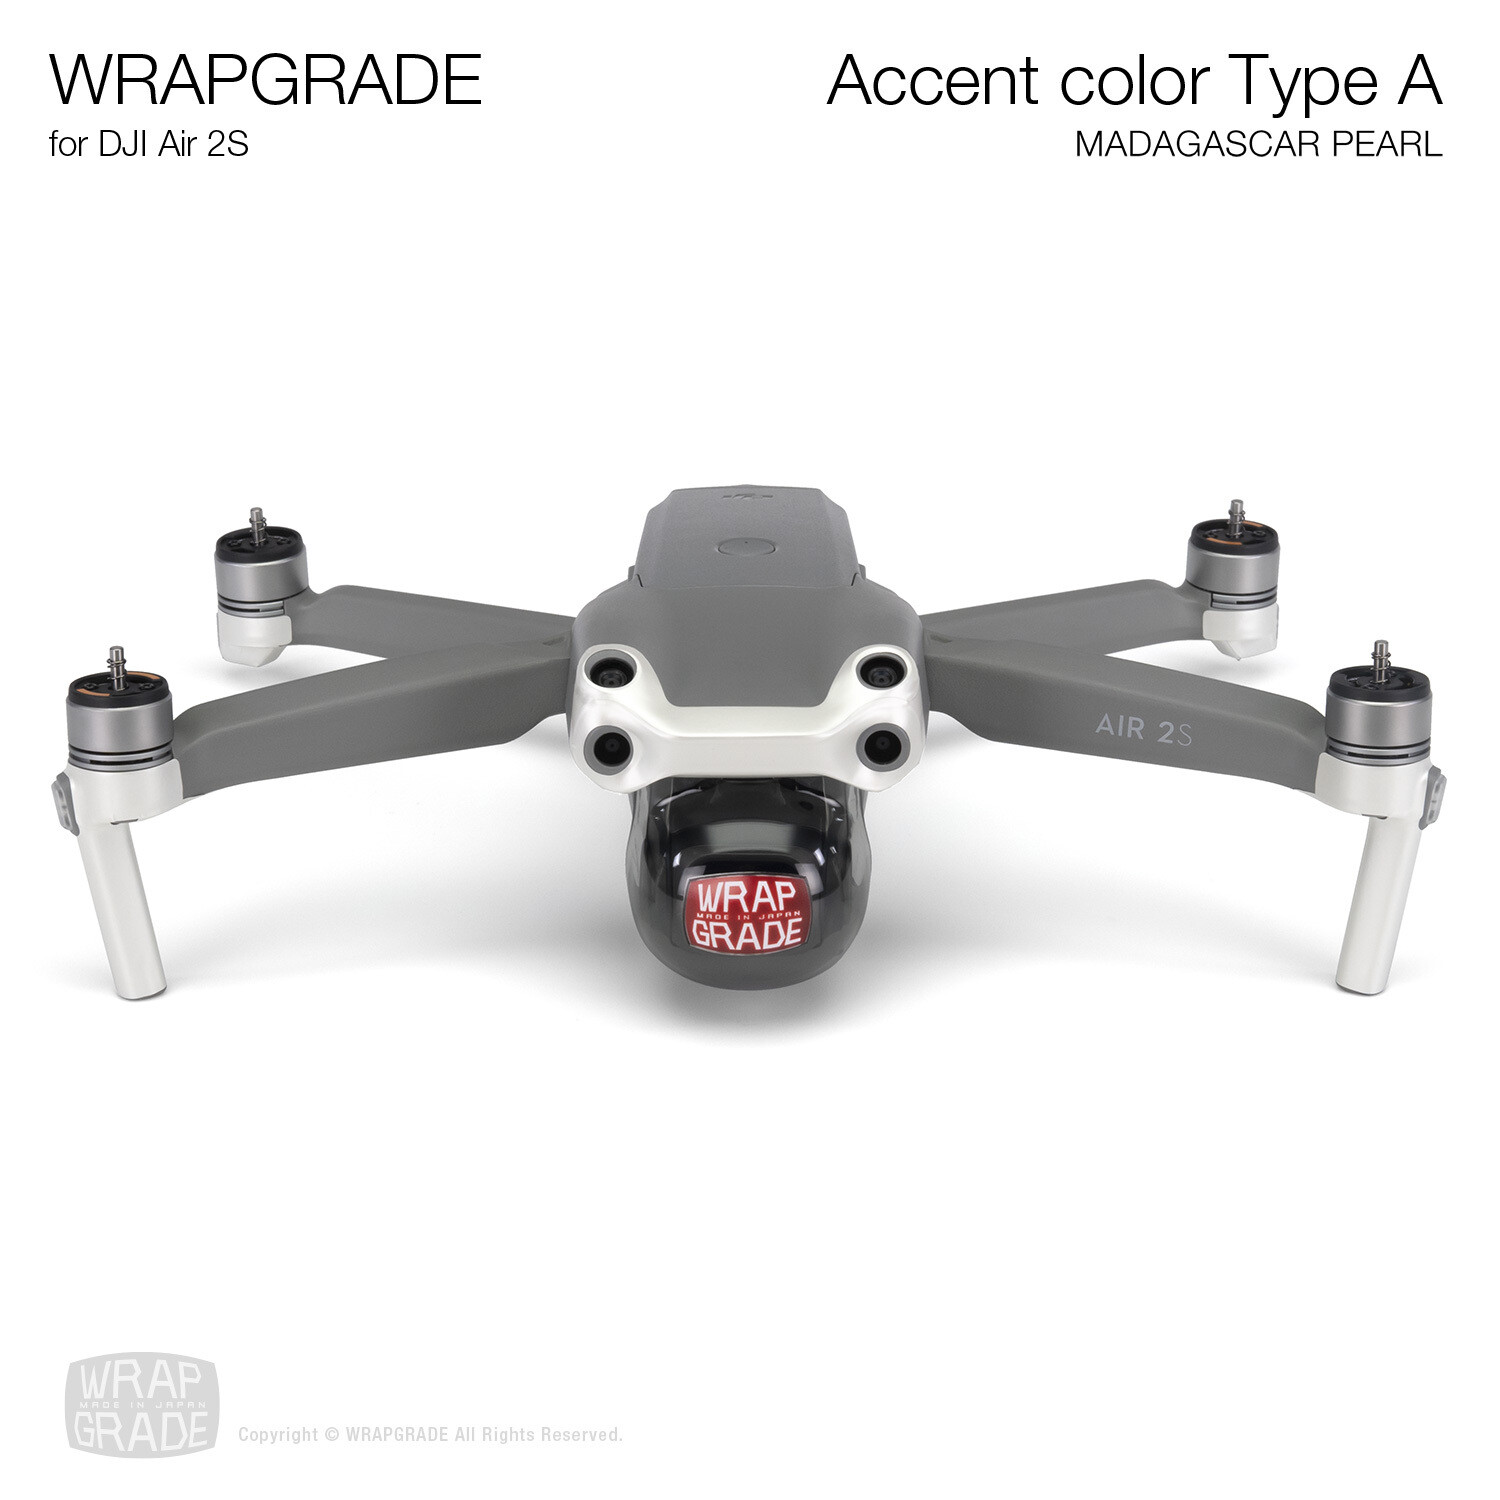 Wrapgrade Skin for DJI Air 2S | Accent Color A (MADAGASCAR PEARL)